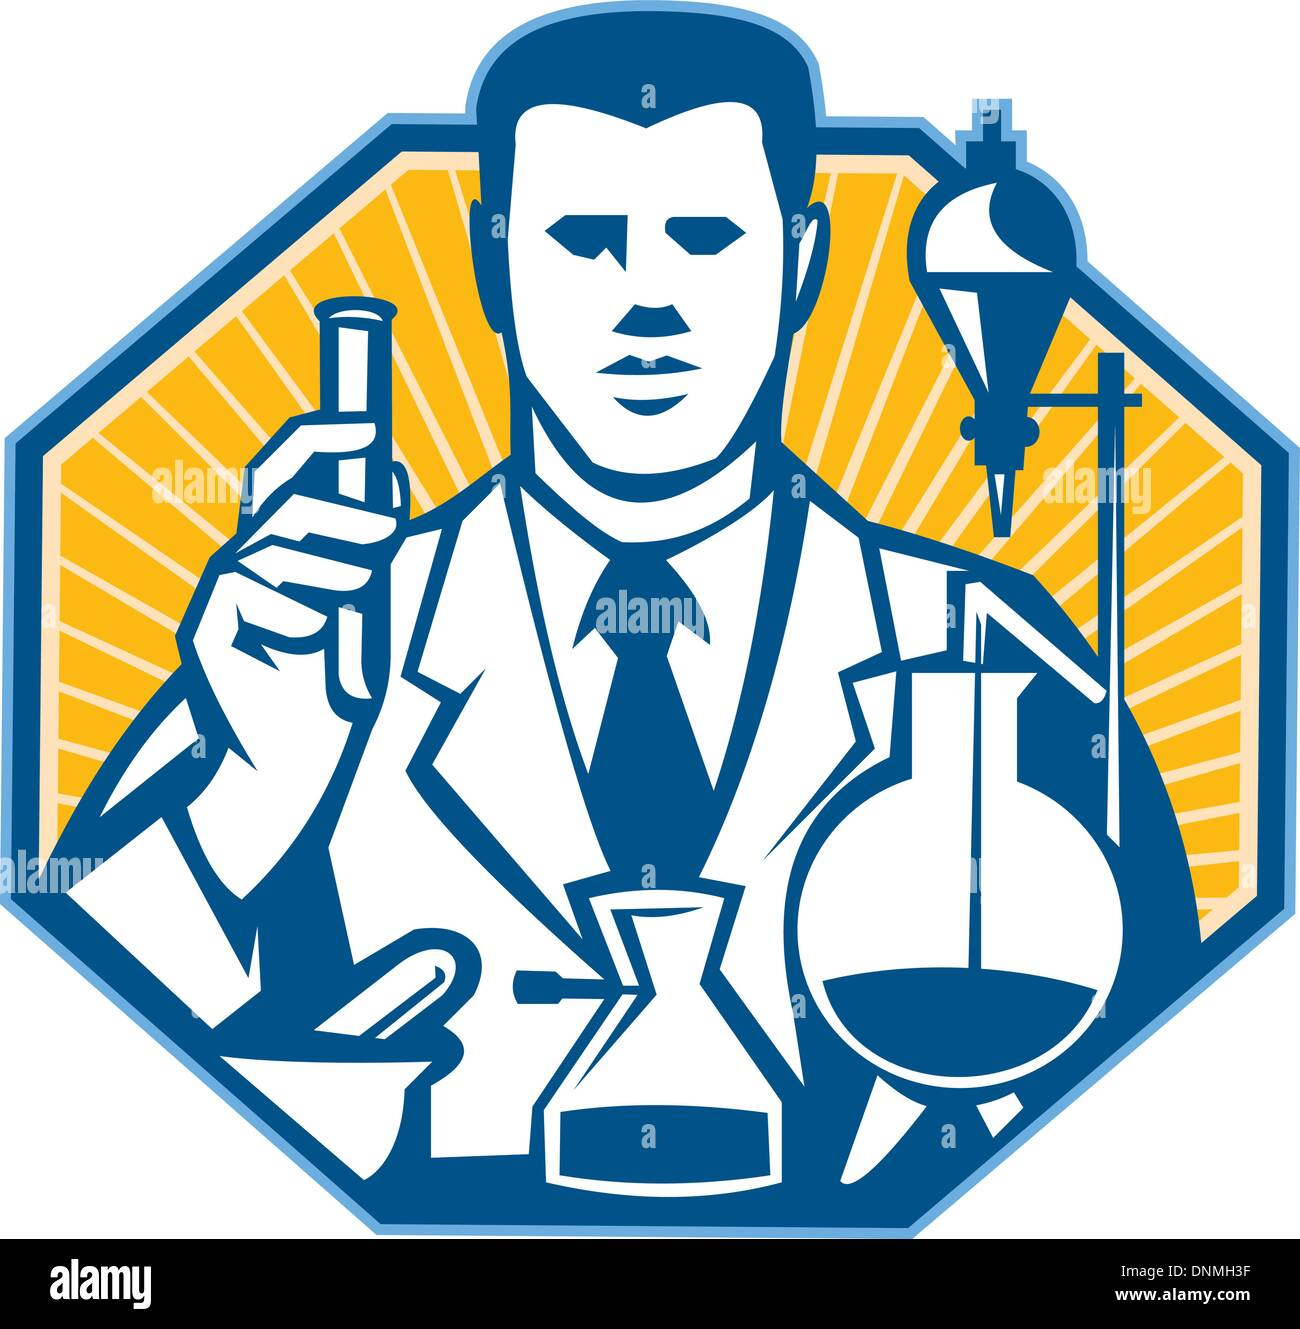 Illustration of scientist laboratory researcher chemist holding test tube flask done in retro style. - Stock Vector